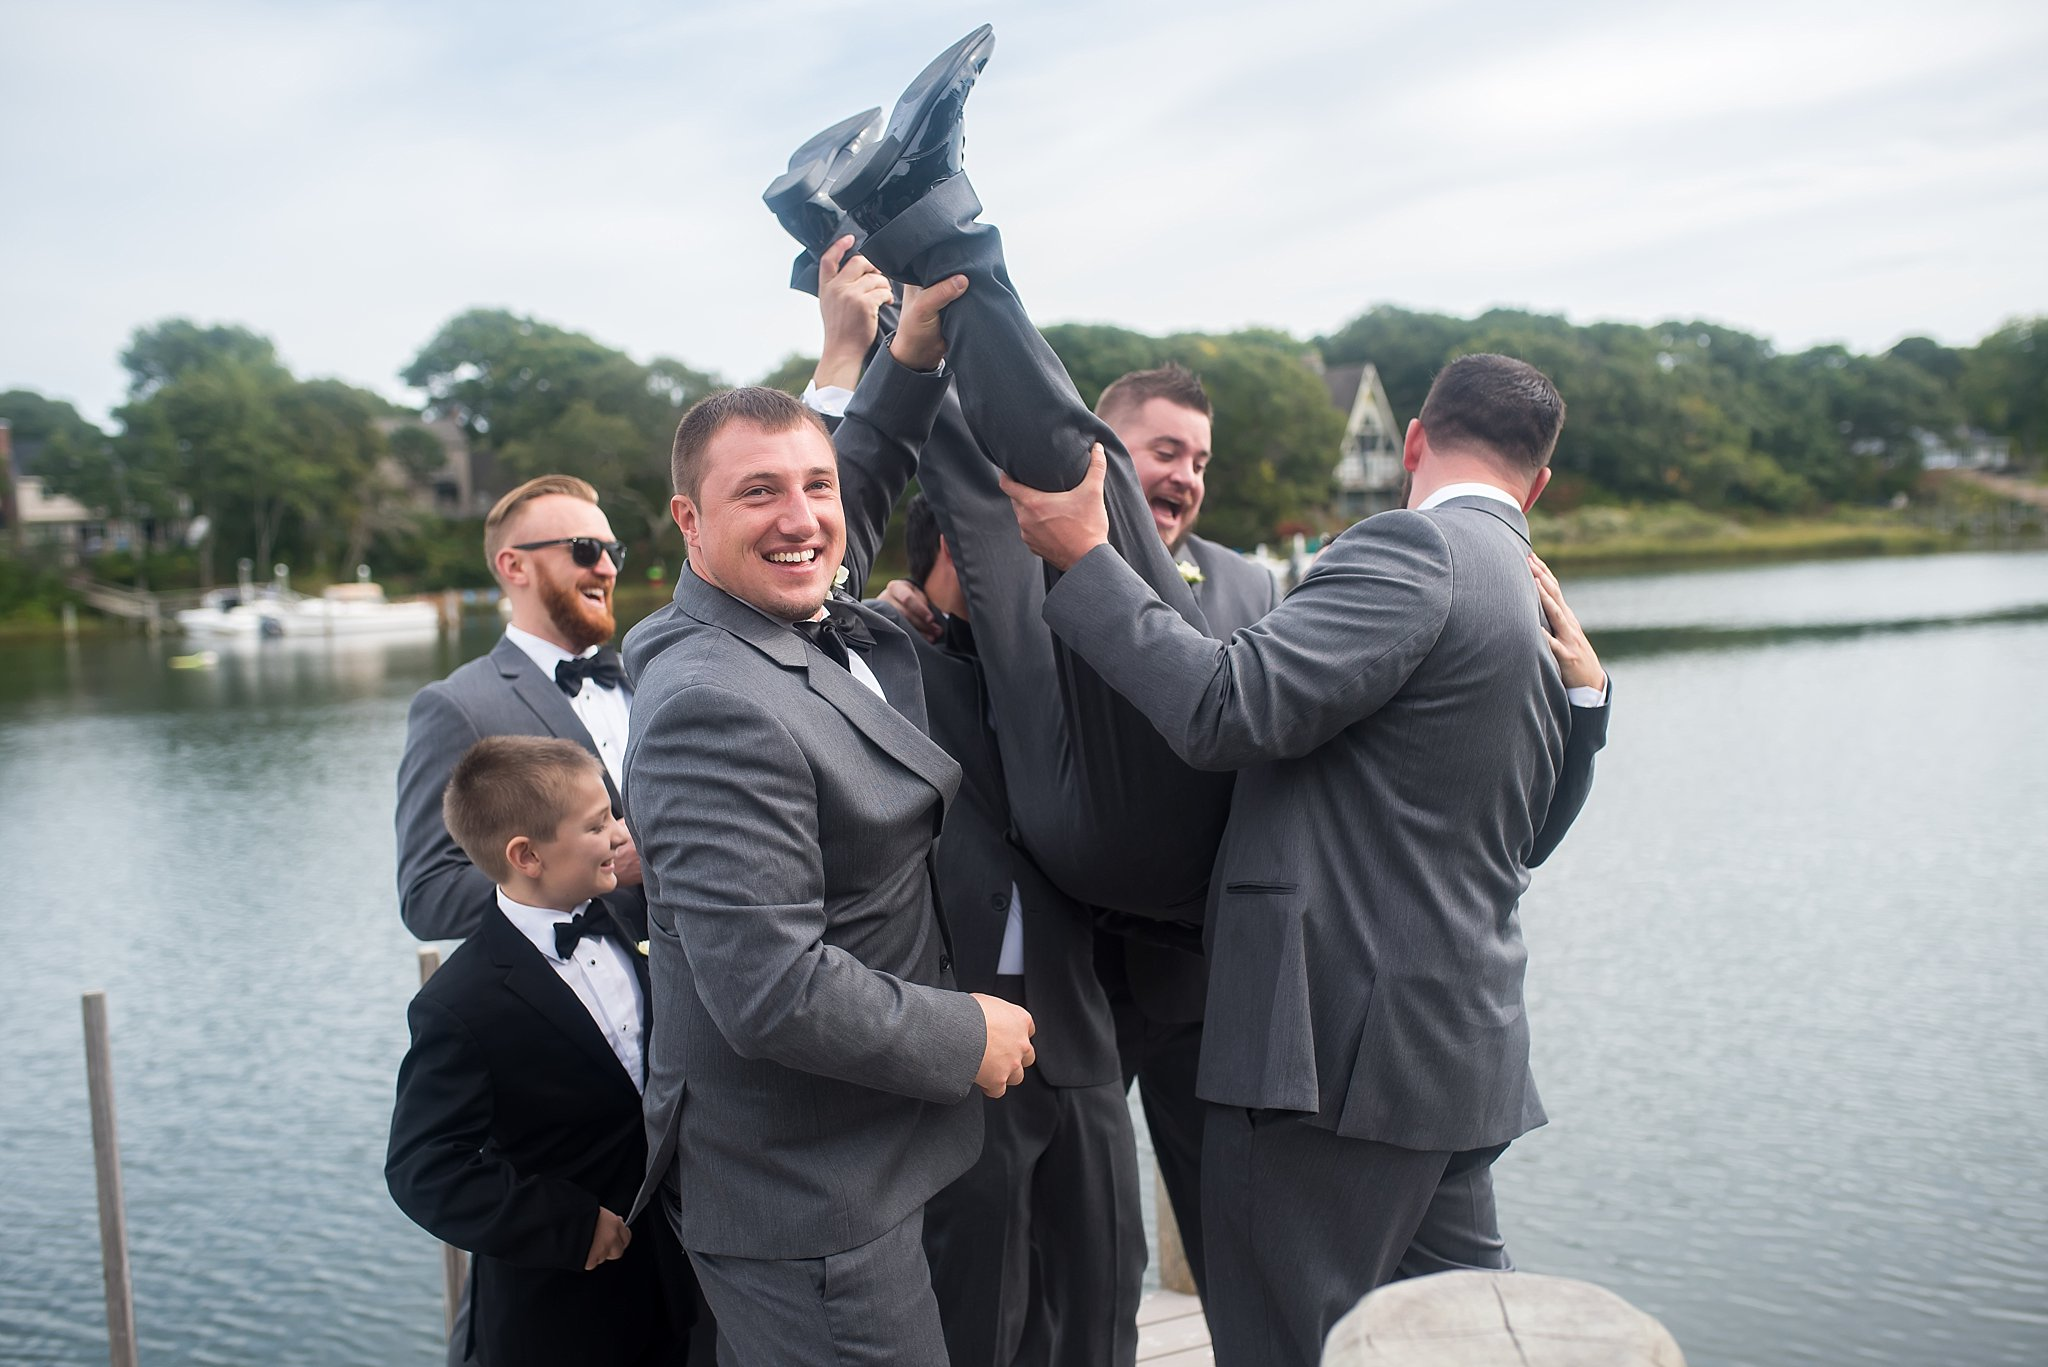 fun groomsmen photographs in new england.jpg